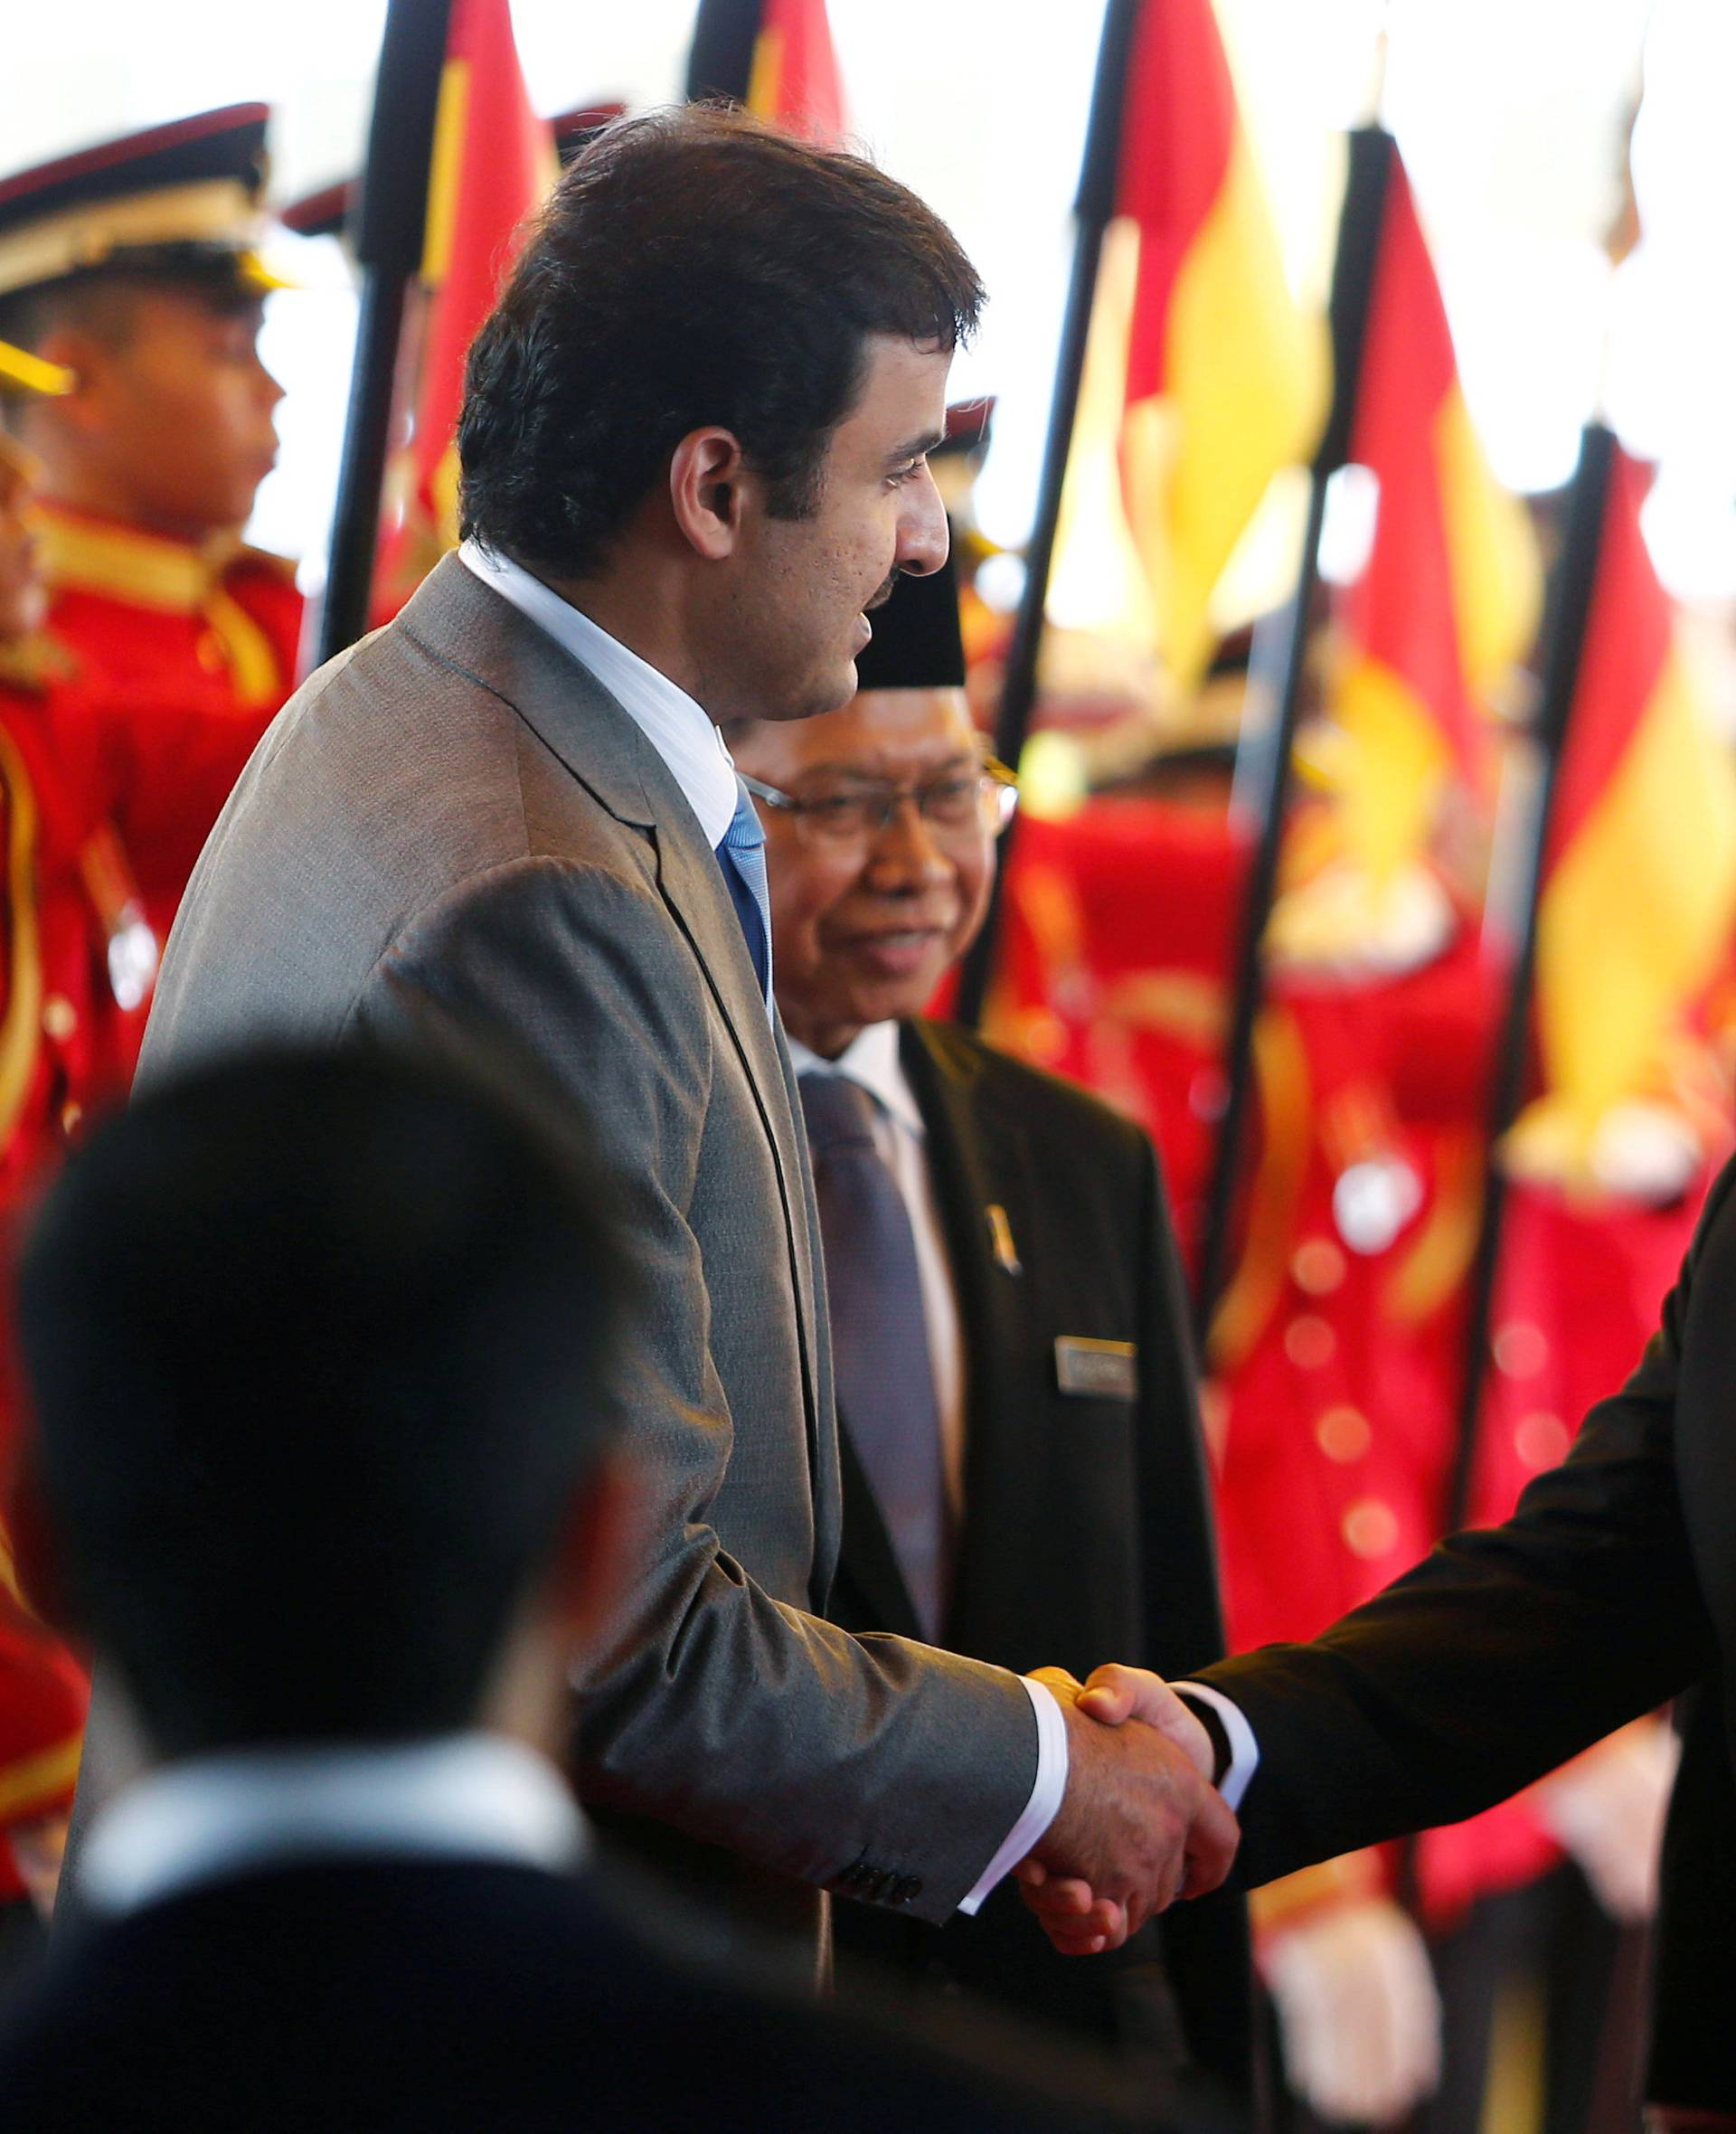 FILE PHOTO: Qatar's Emir Sheikh Tamim bin Hamad al-Thani shakes hand with Malaysia's King Muhammad V after a state welcome ceremony at the Parliament House in Kuala Lumpur